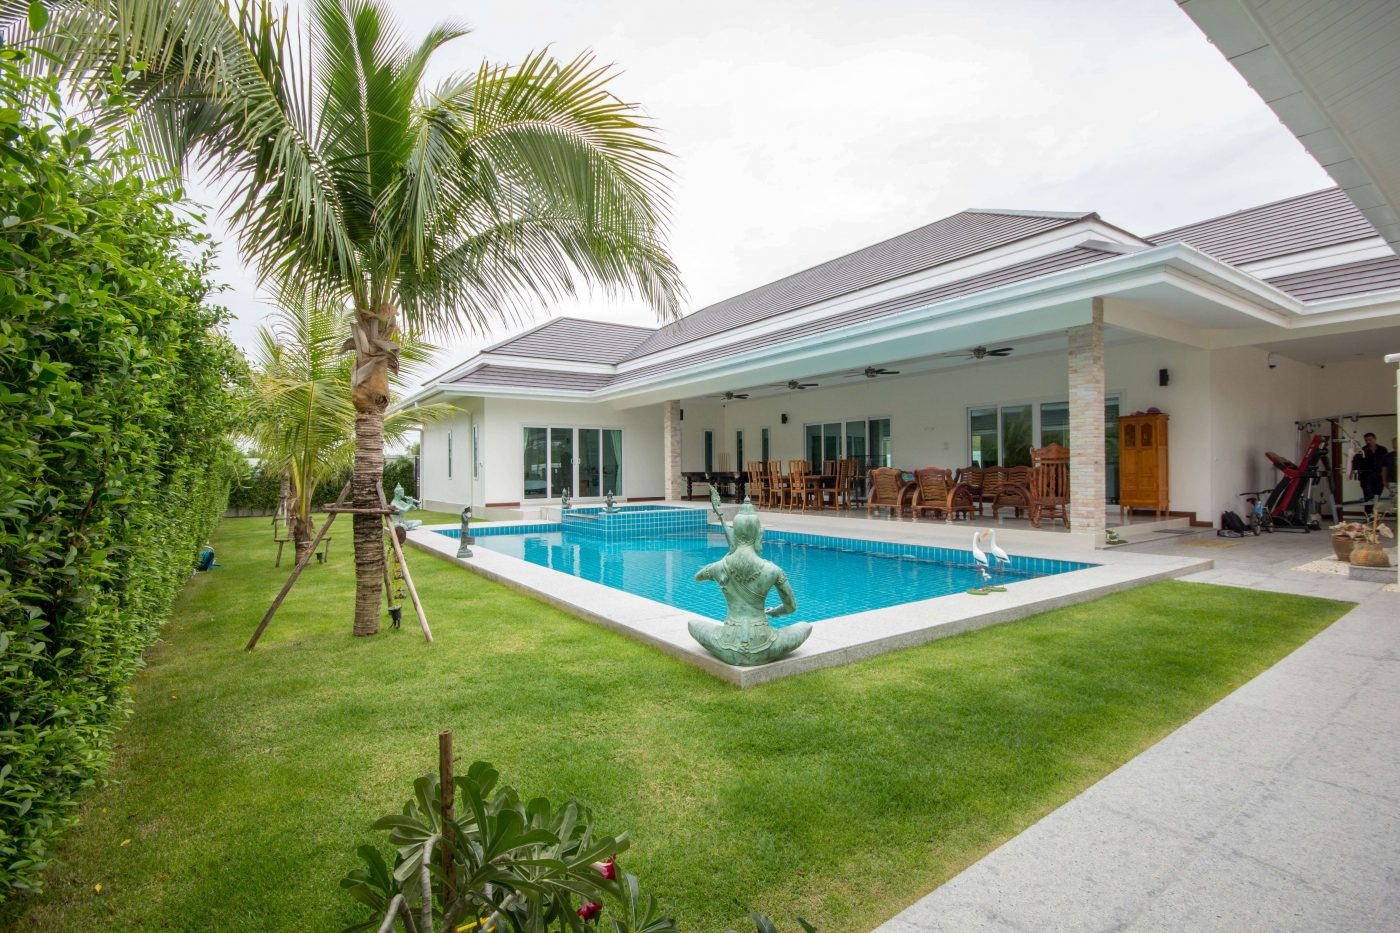 4 Bedroom Pool Villa For Sale at Orchid Villas Soi 114 at Hua Hin District, Prachuap Khiri Khan, Thailand